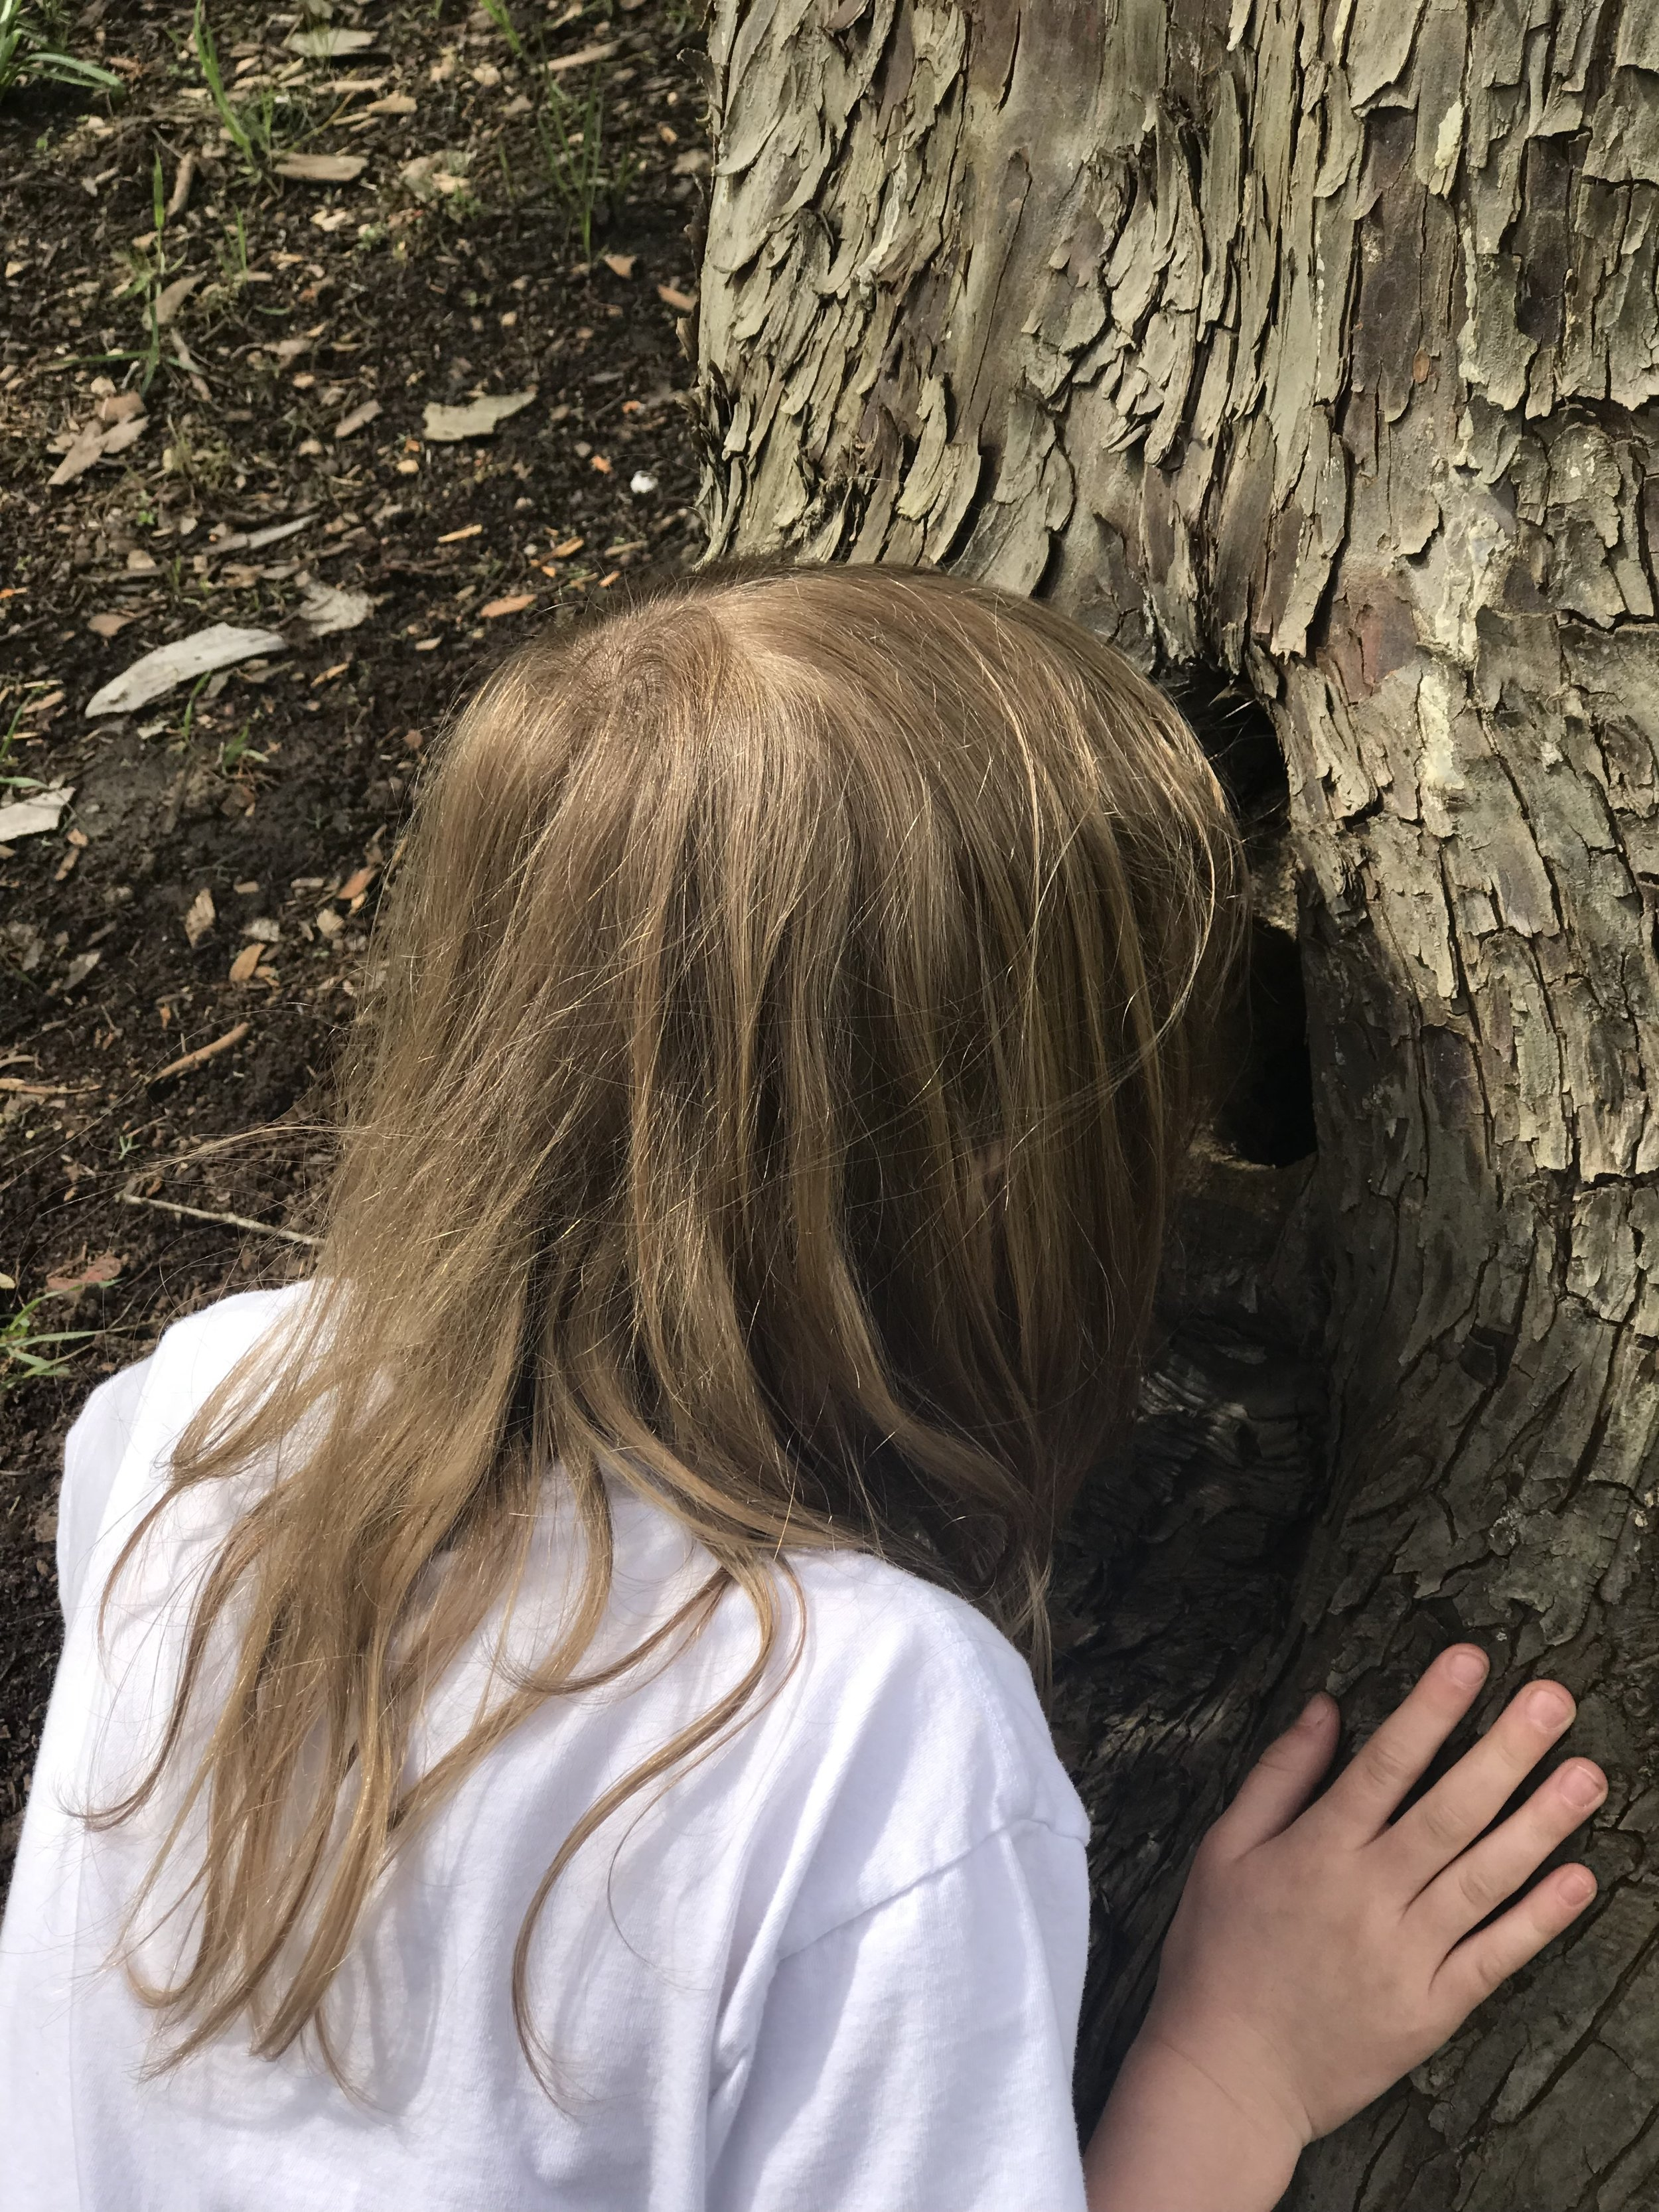 Ember pondering the inside of a tree. Image courtesy of Gretchen Boyer.